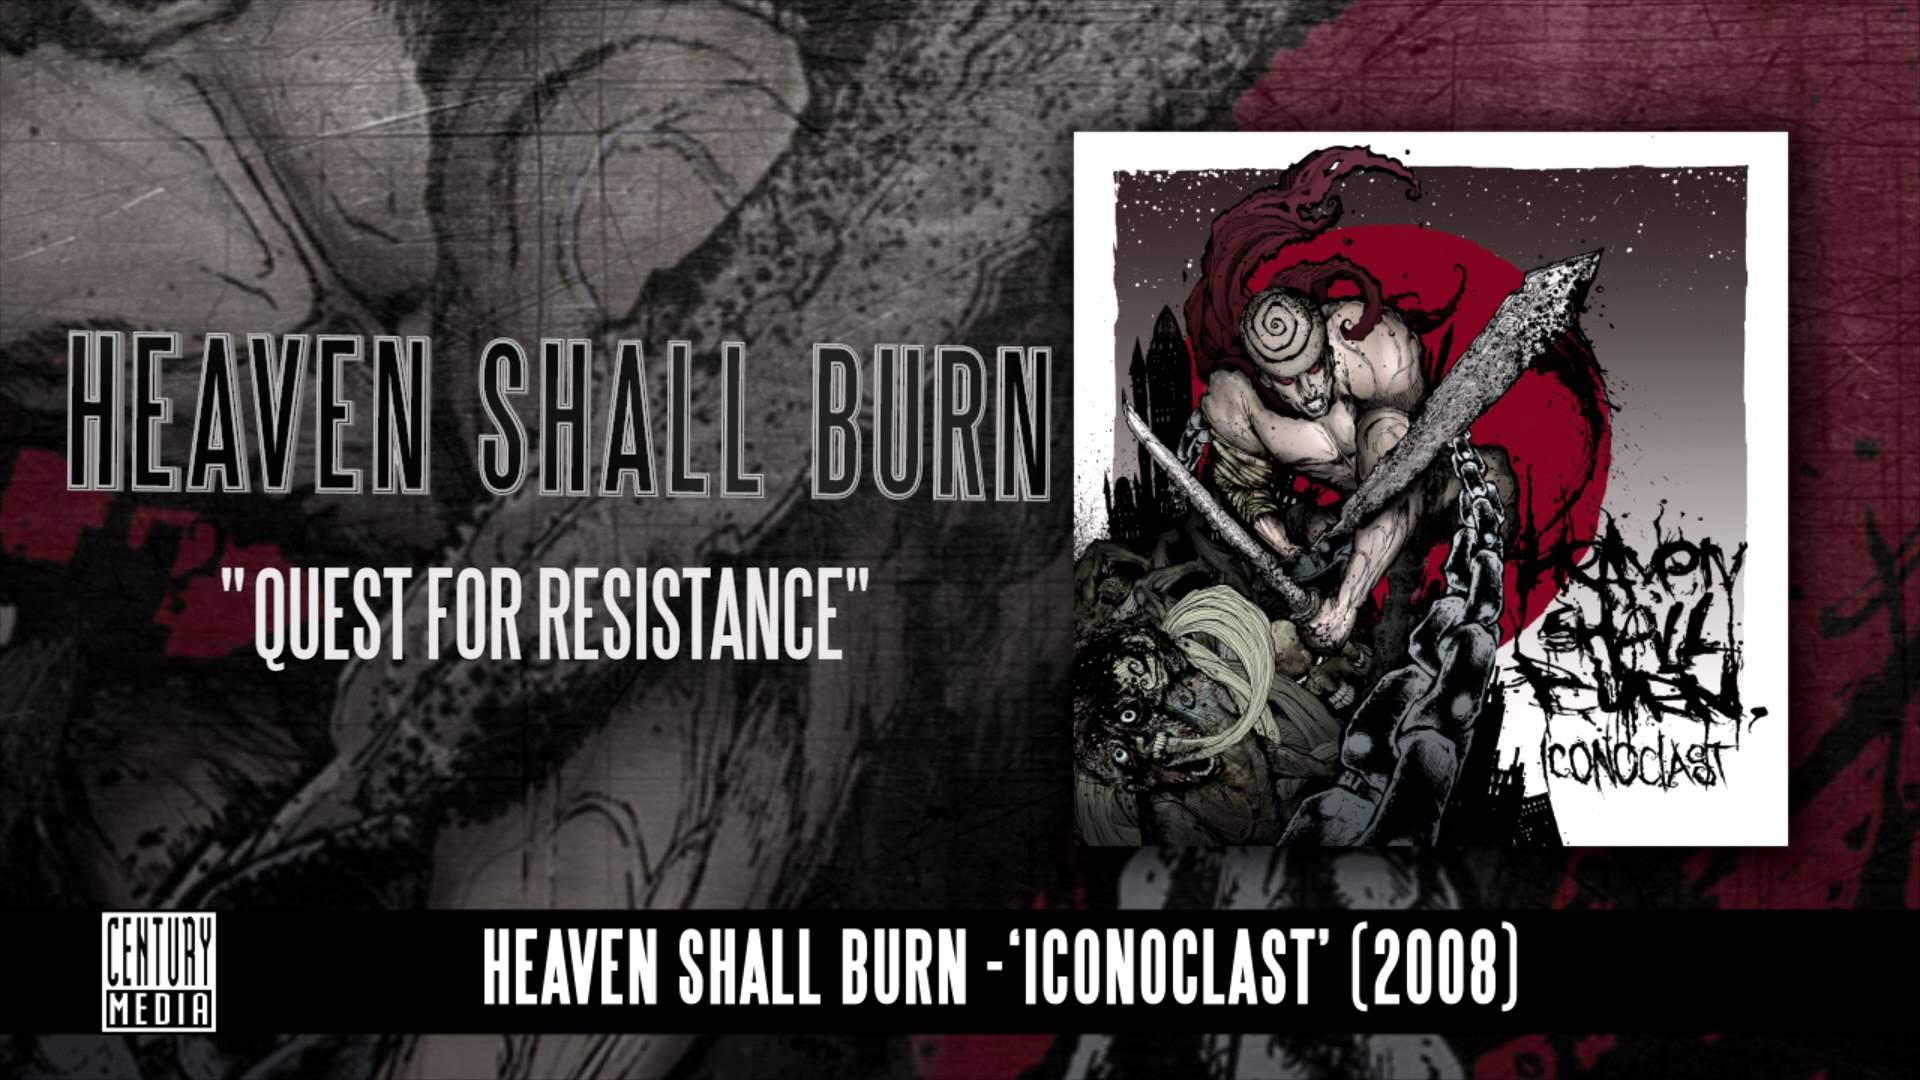 HEAVEN SHALL BURN - Iconoclast Part I The Final Resistance (FULL ALBUM STREAM)